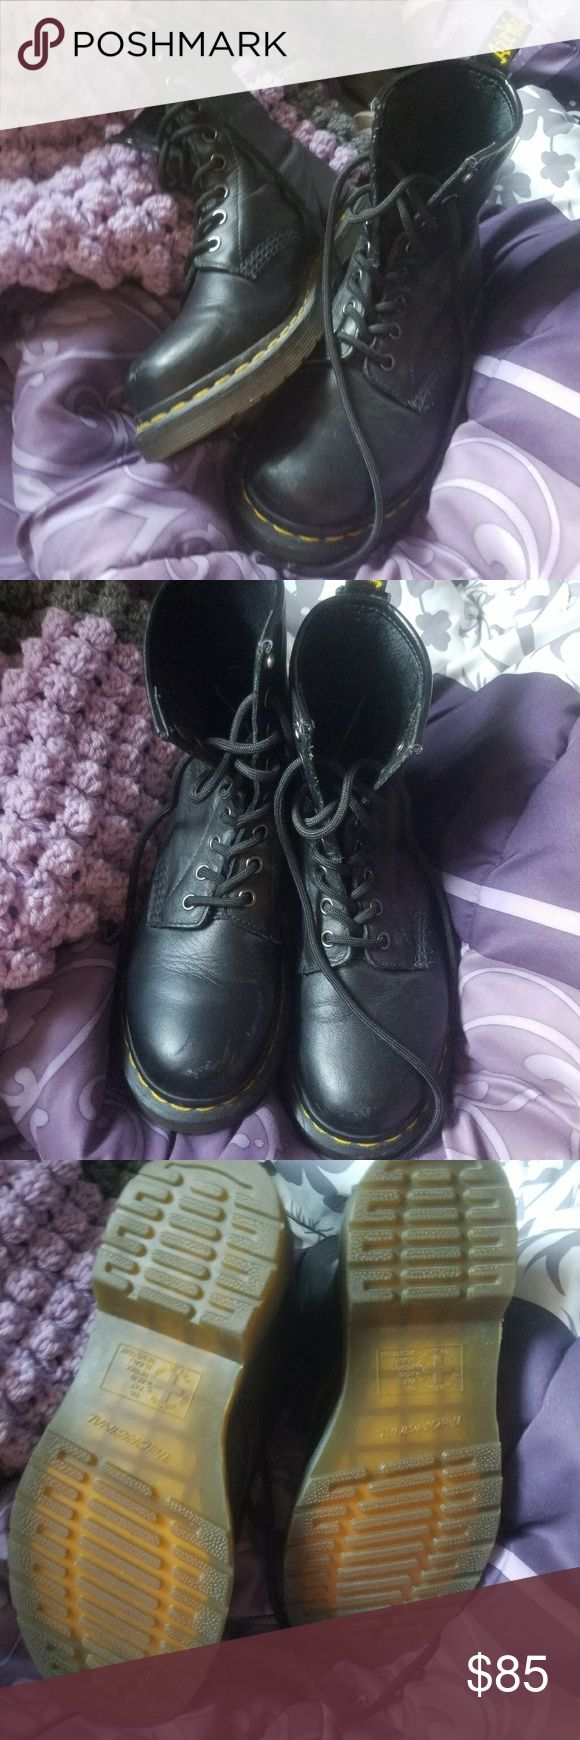 Dr. Marten' s size 4/6 Dr. Marten's original combat boots in black with yellow stitching  in good condition Dr. Martens Shoes Combat & Moto Boots